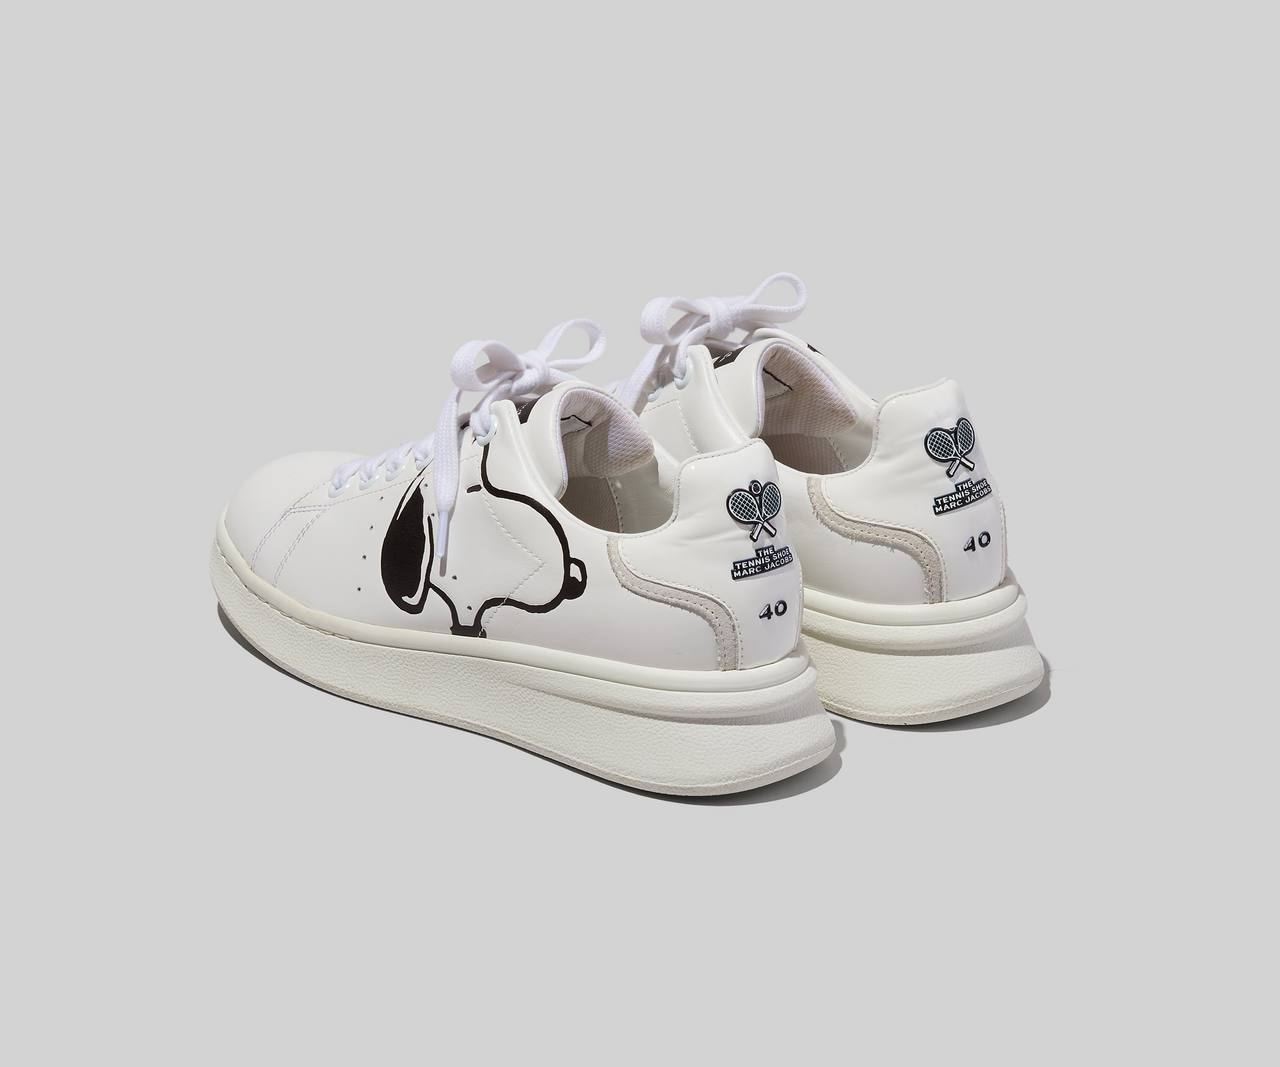 Chaussures Marc Jacobs x Peanuts